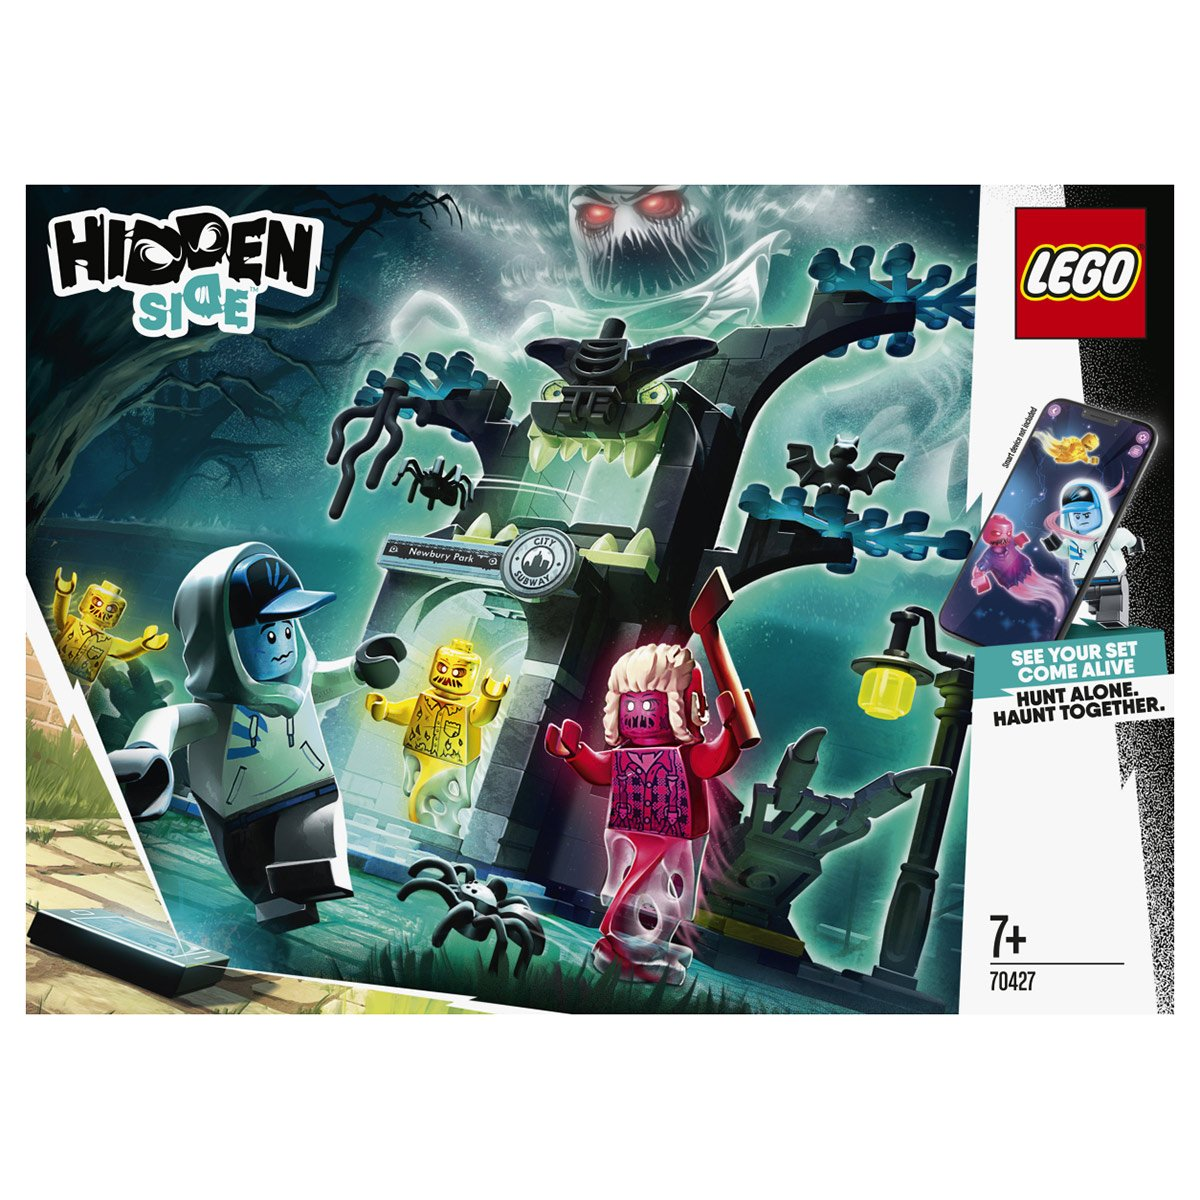 Le Monde Hante D Hidden Side Lego Hidden Side 70427 Coffrets De